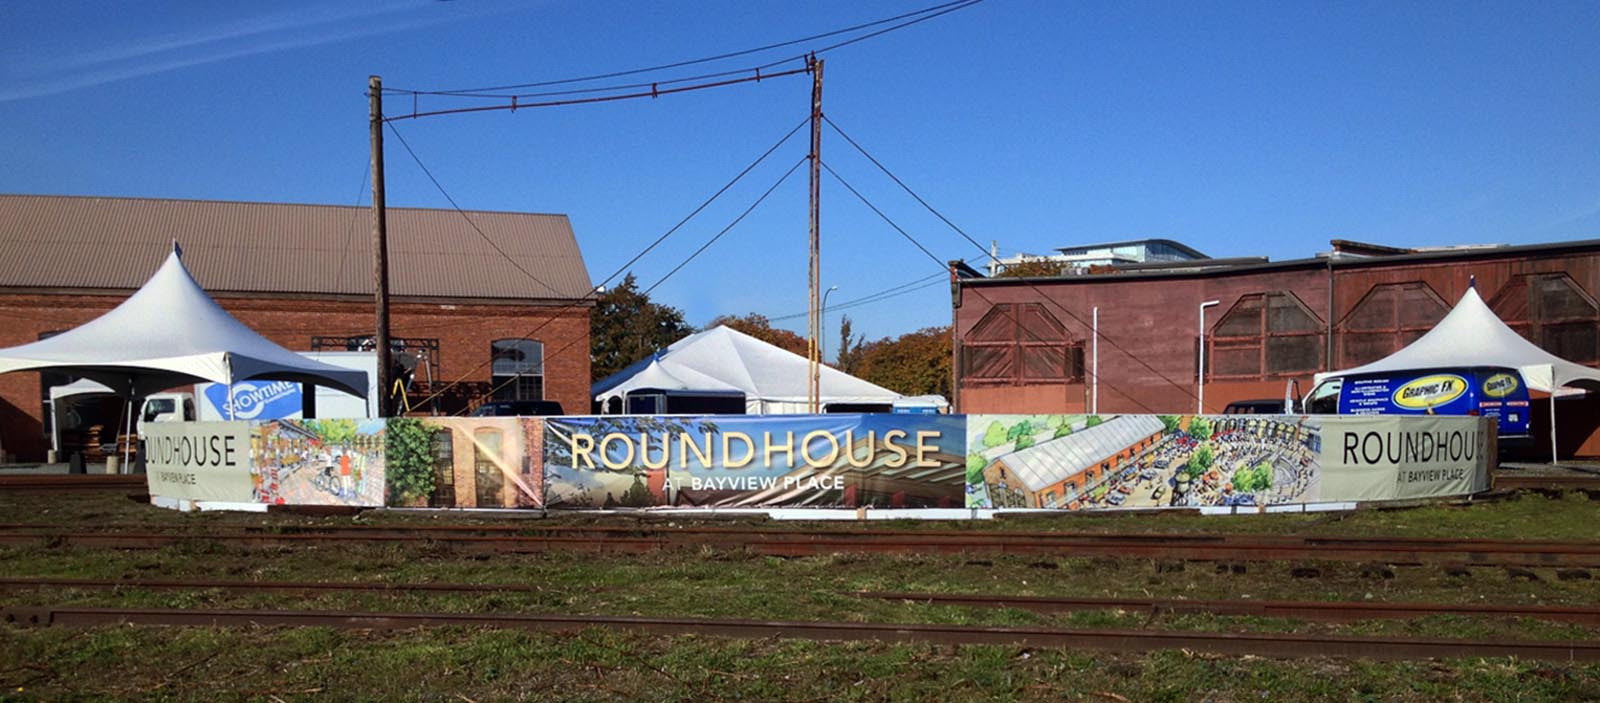 Roundhouse-banner2